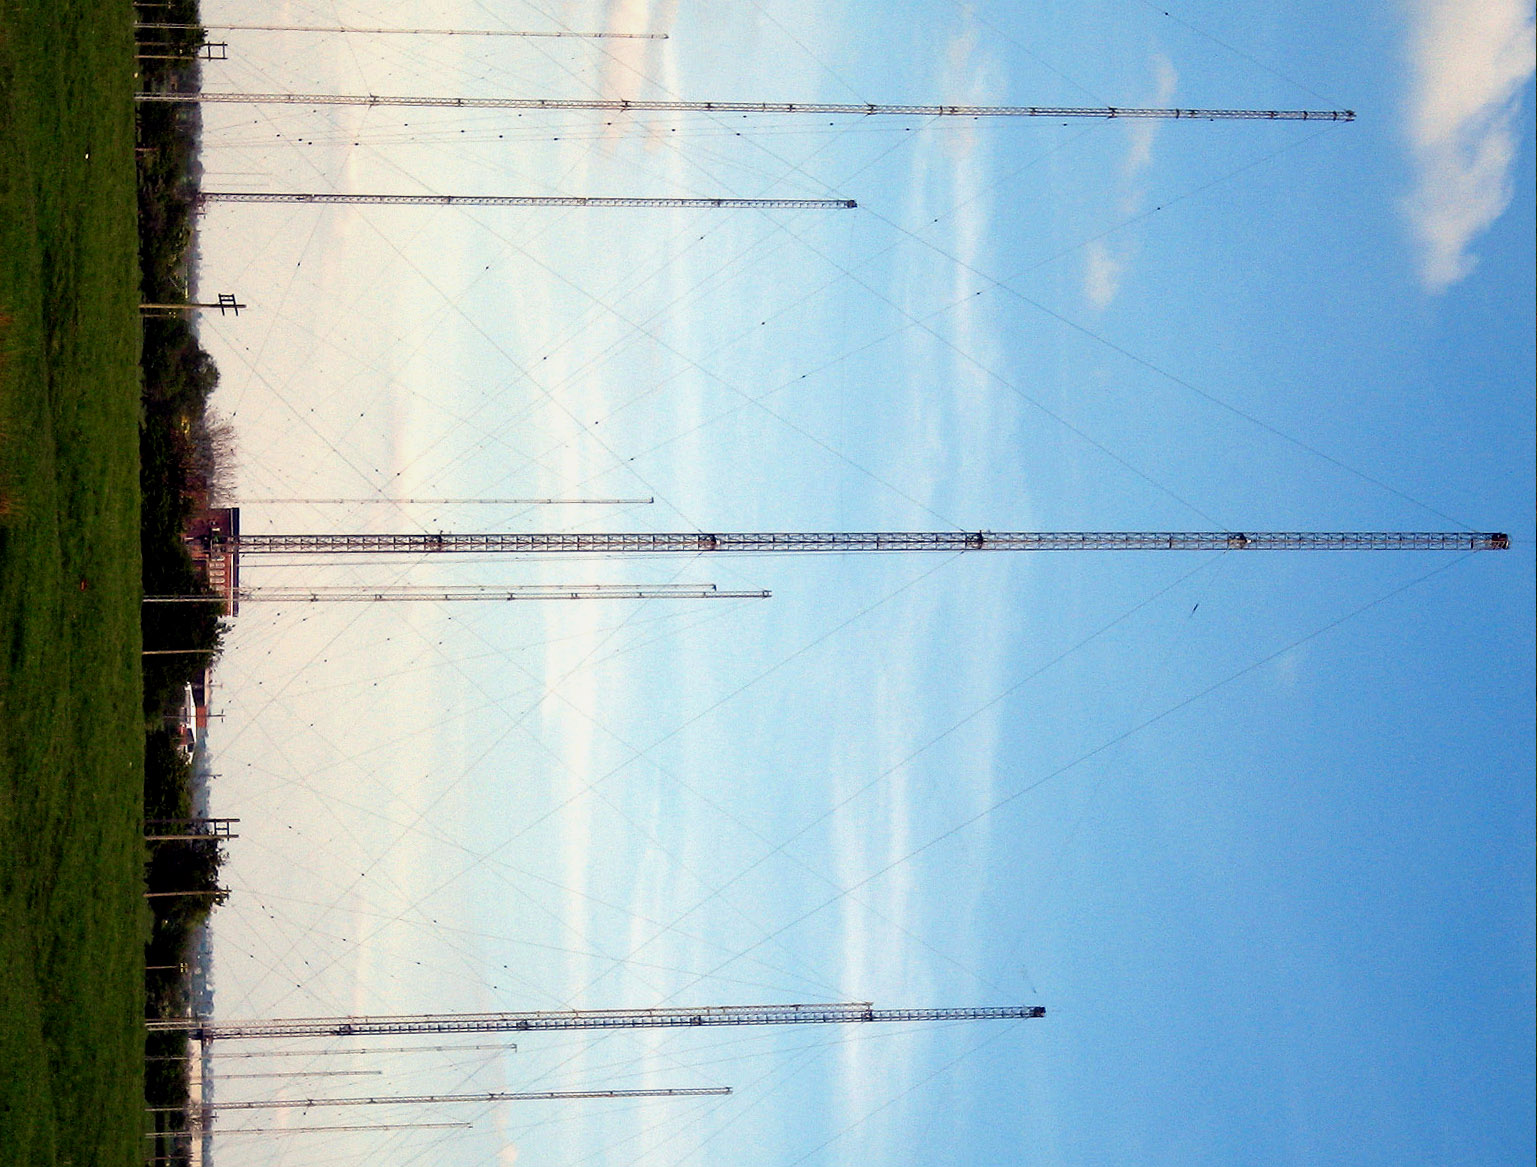 Radio masts and towers on tower radio network